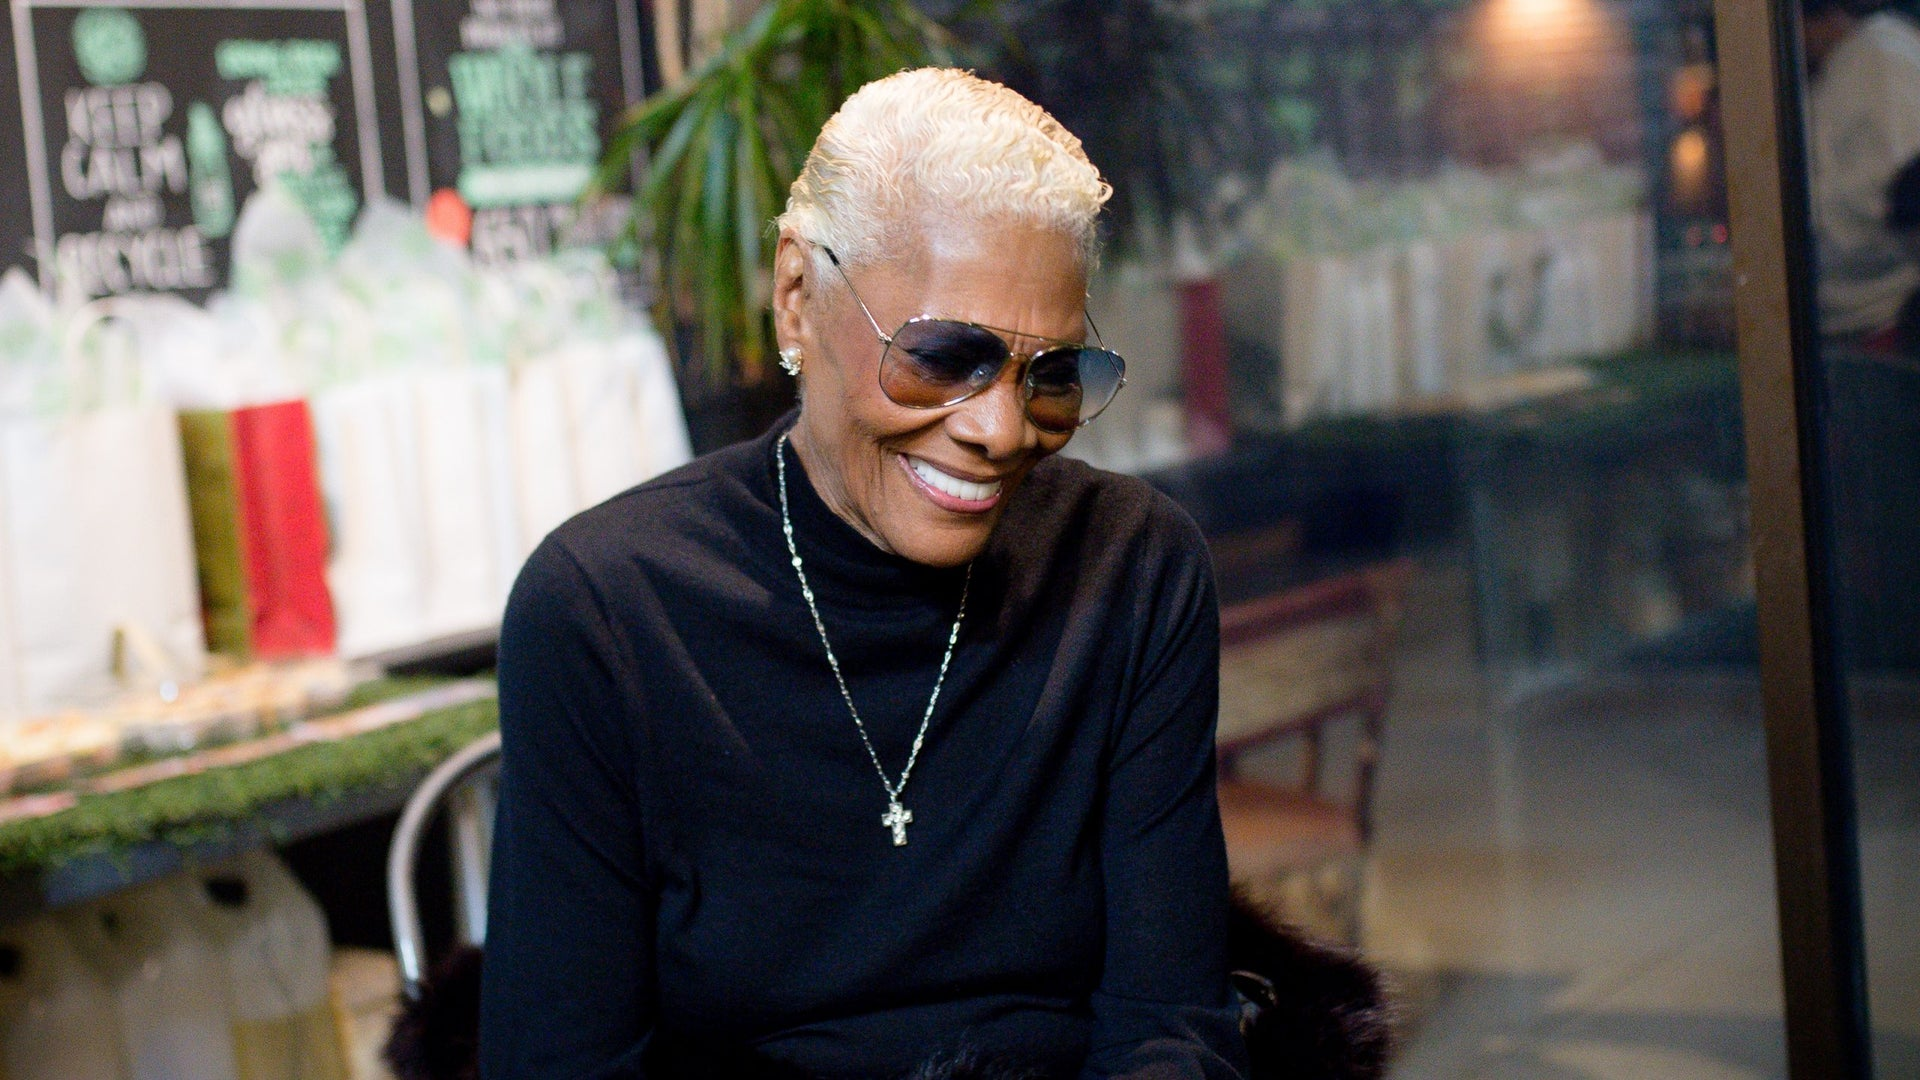 Dionne Warwick Rules Twitter, Pokes Fun At Chance The Rapper And The Weeknd Over Their Names